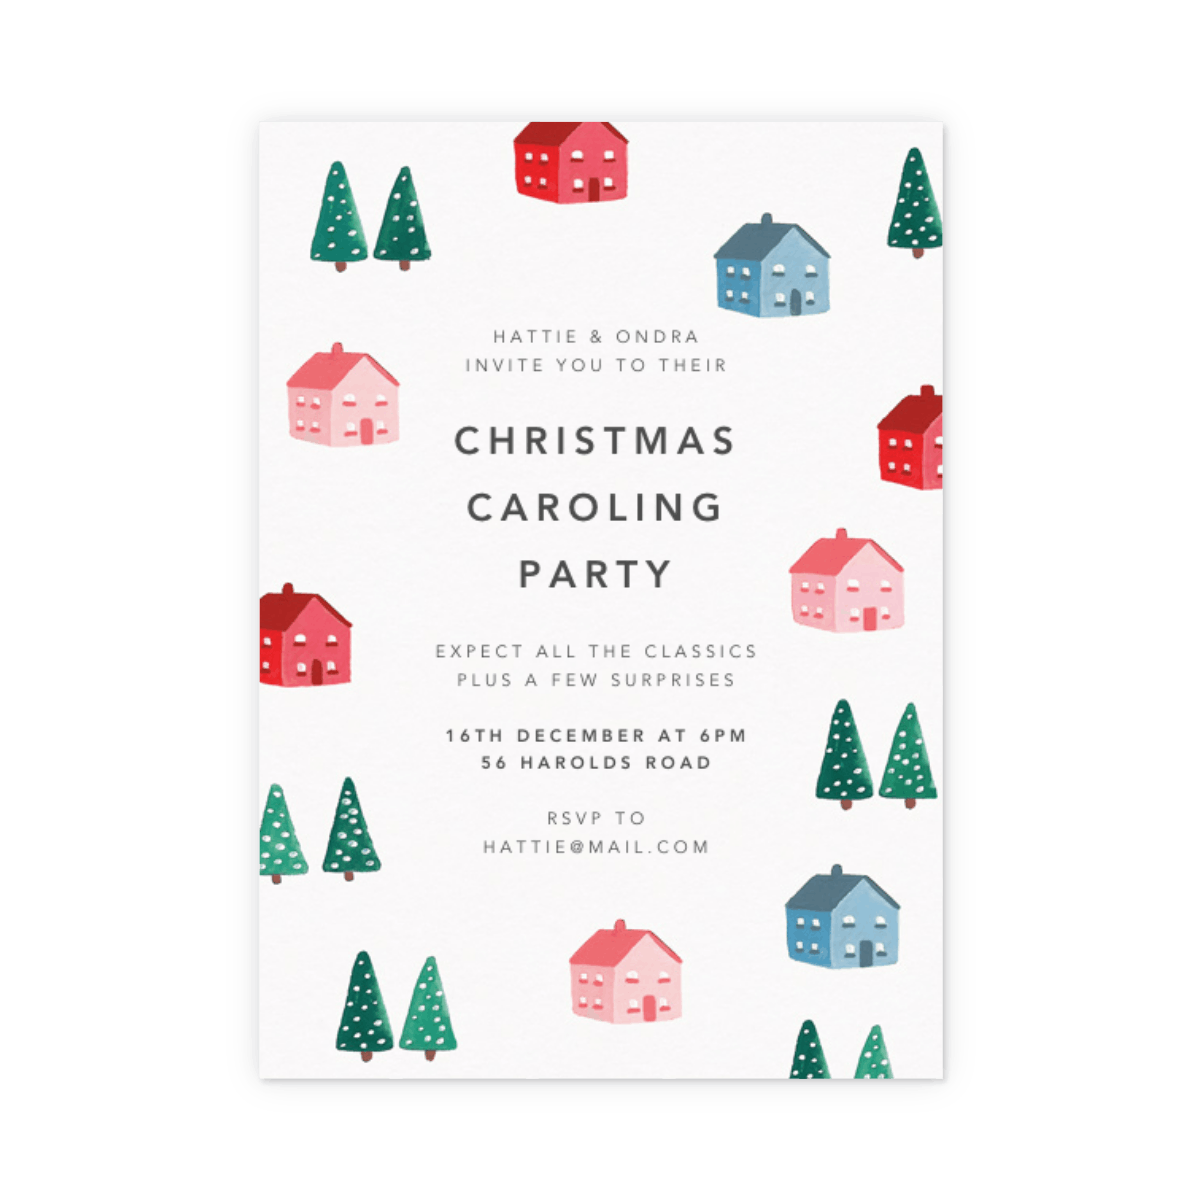 Https%3a%2f%2fwww.papier.com%2fproduct image%2f25714%2f4%2fchristmas town 6414 front 1573127584.png?ixlib=rb 1.1